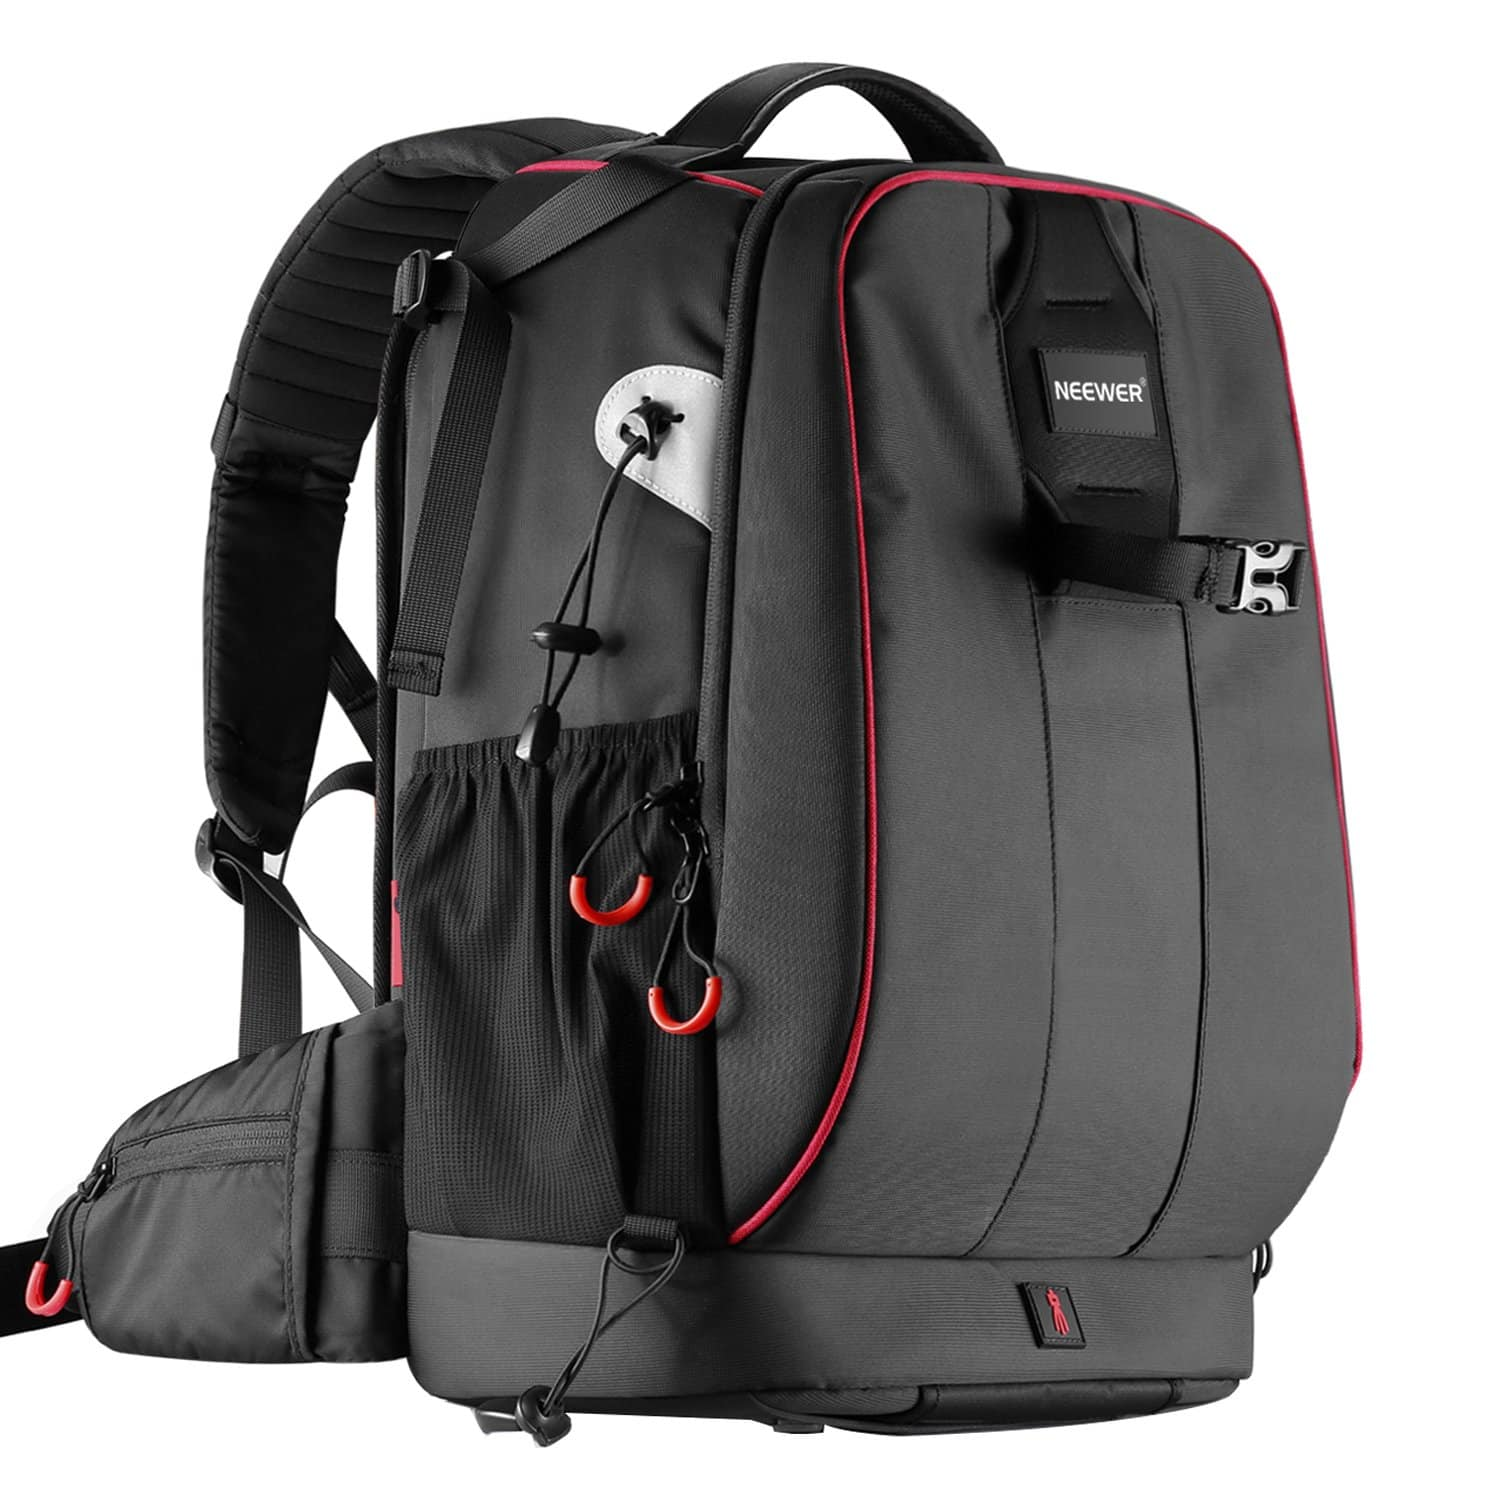 Neewer Pro Protective Anti-Theft Locking Camera Backpack - $59.99 AC + FSSS